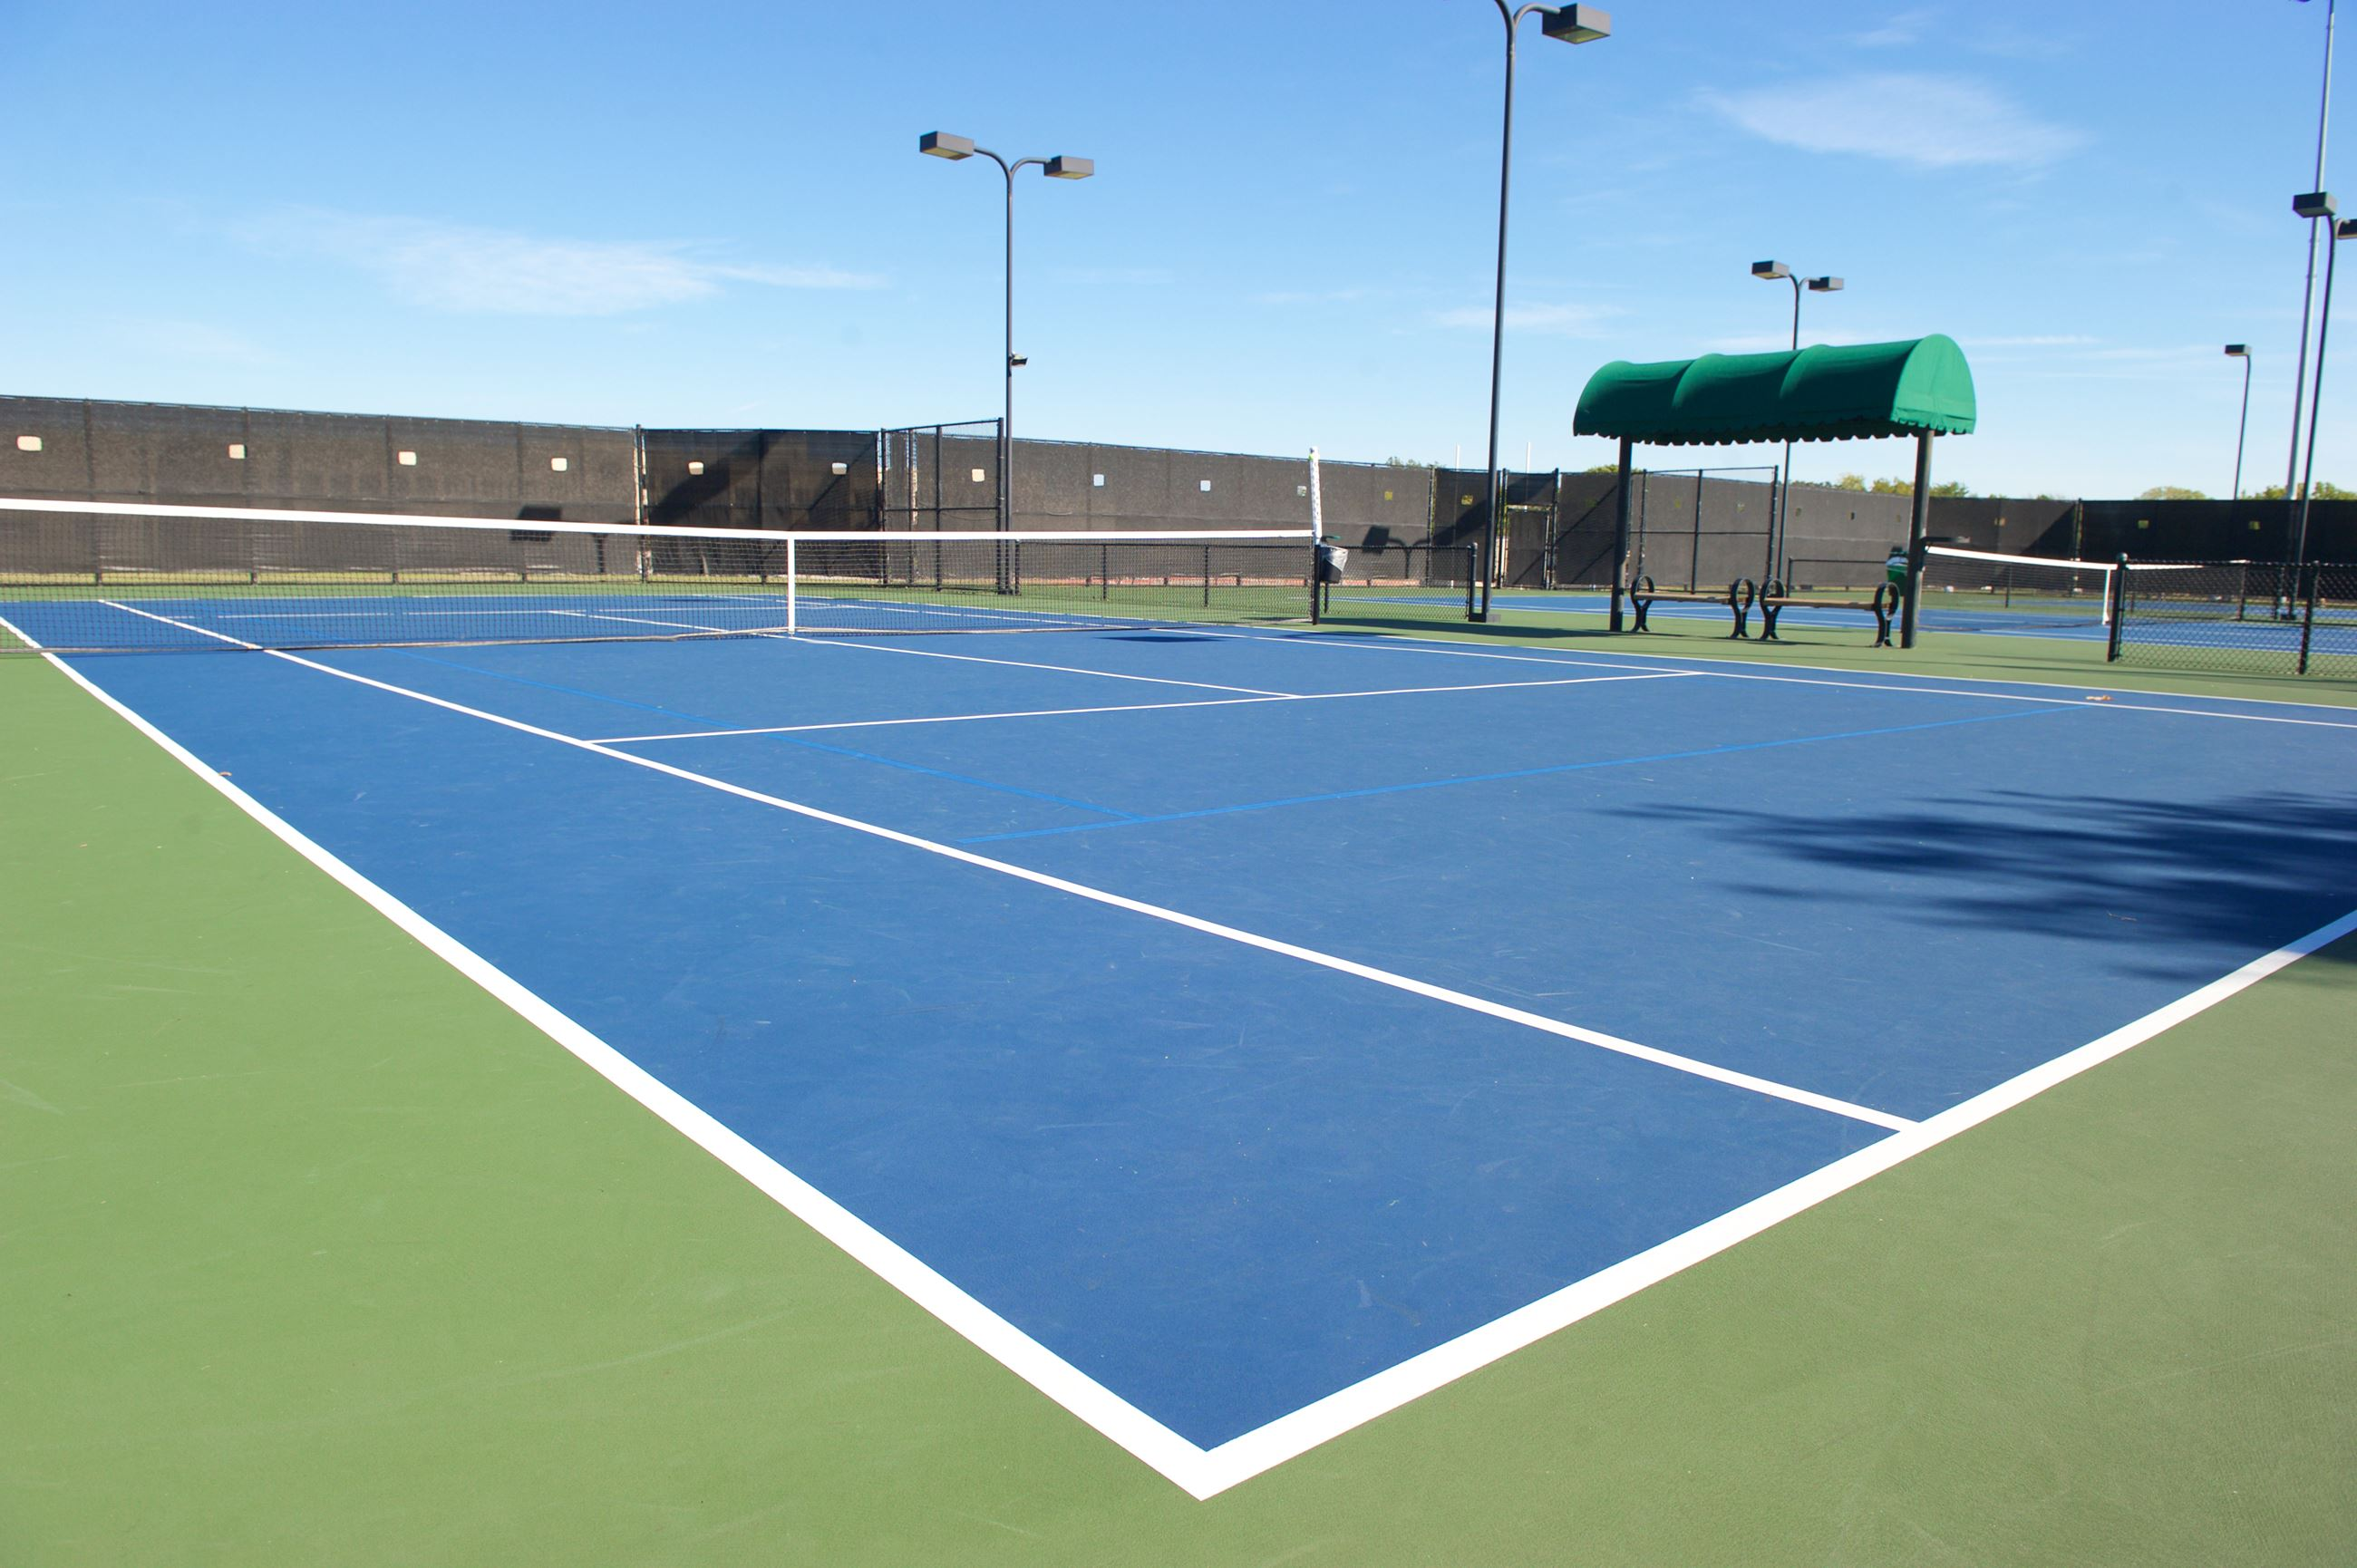 Richland Tennis Center Courts